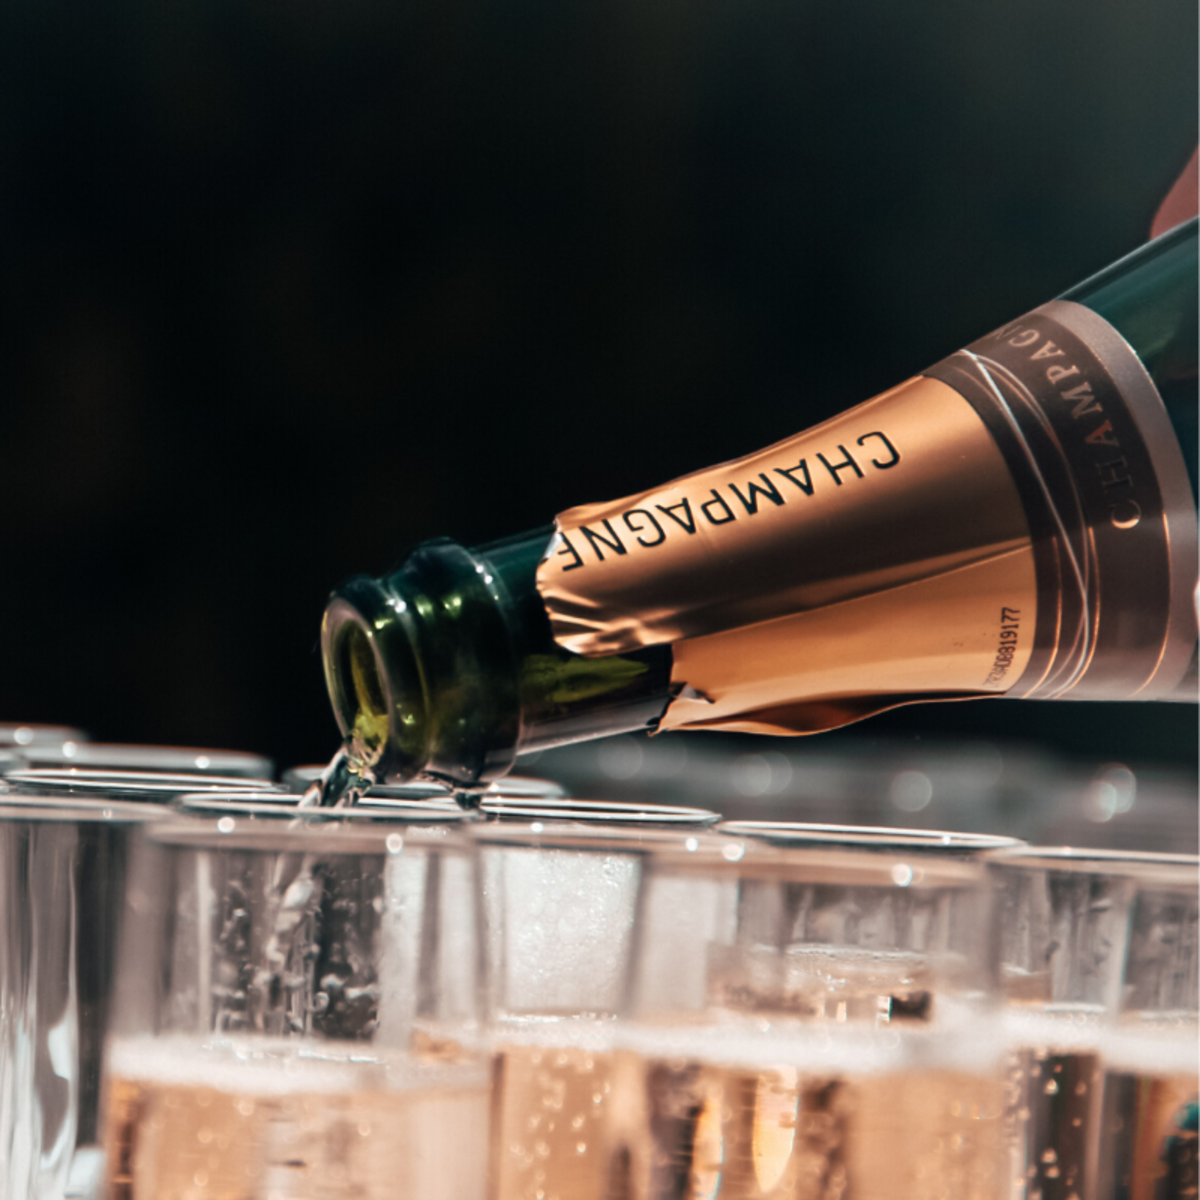 Champagne tends to be more expensive than wine, so it is traditional to save it for only the most important occasions.